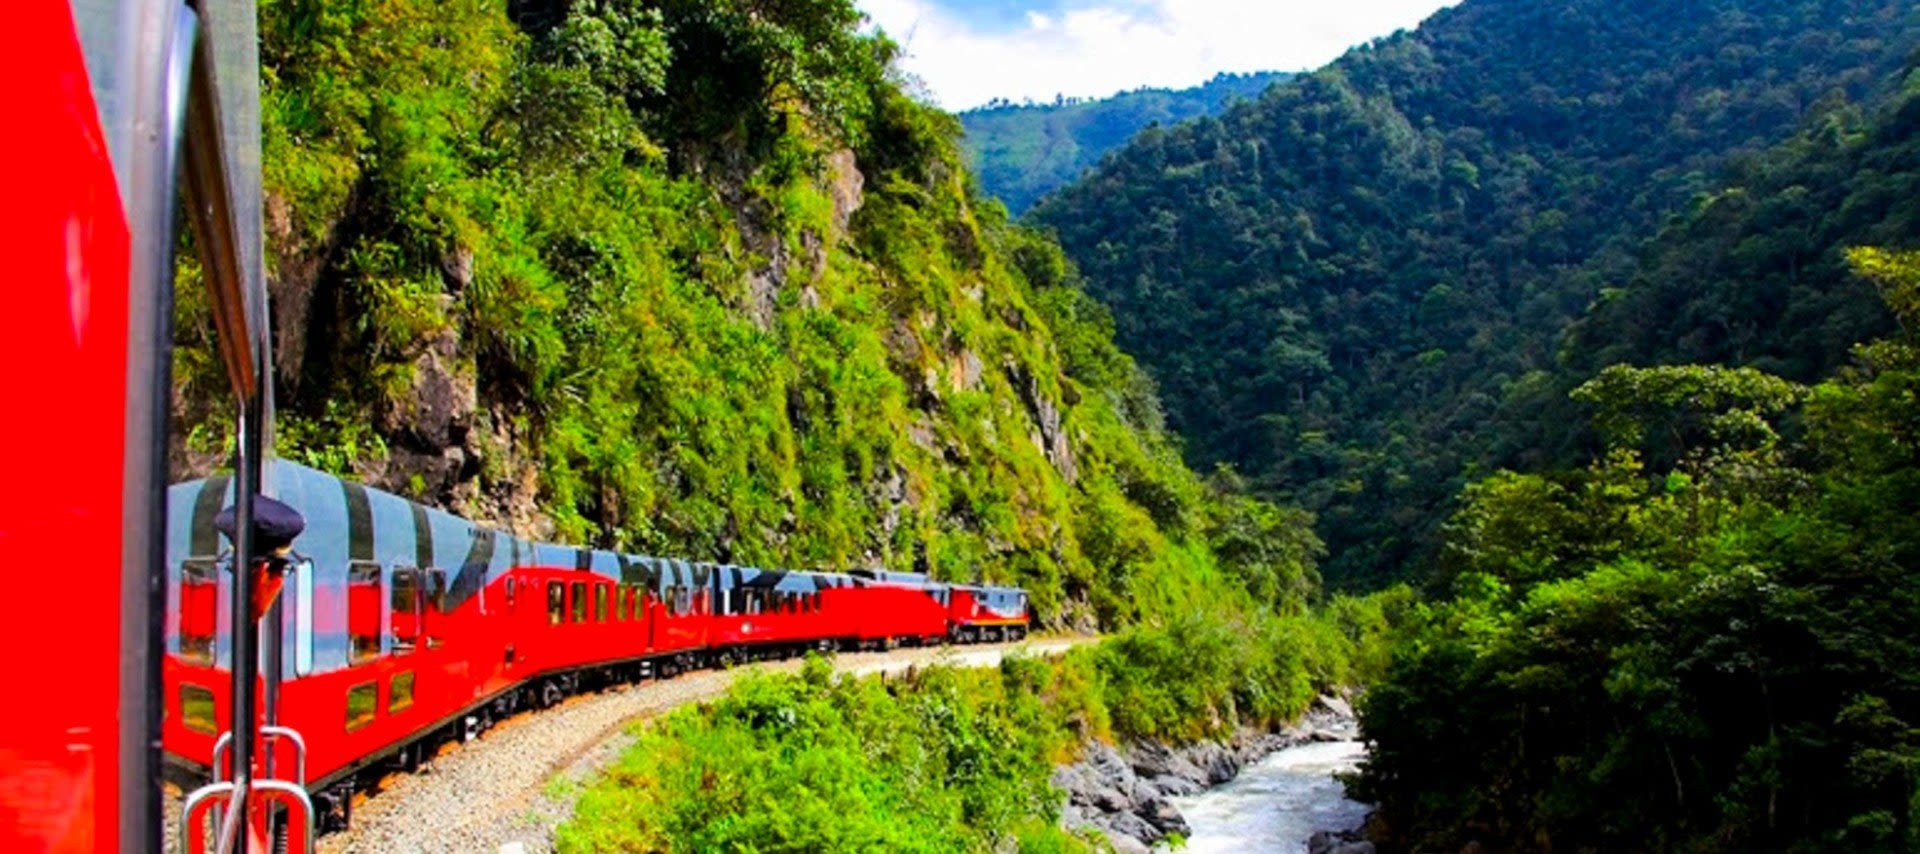 Red train travels through mountain valley